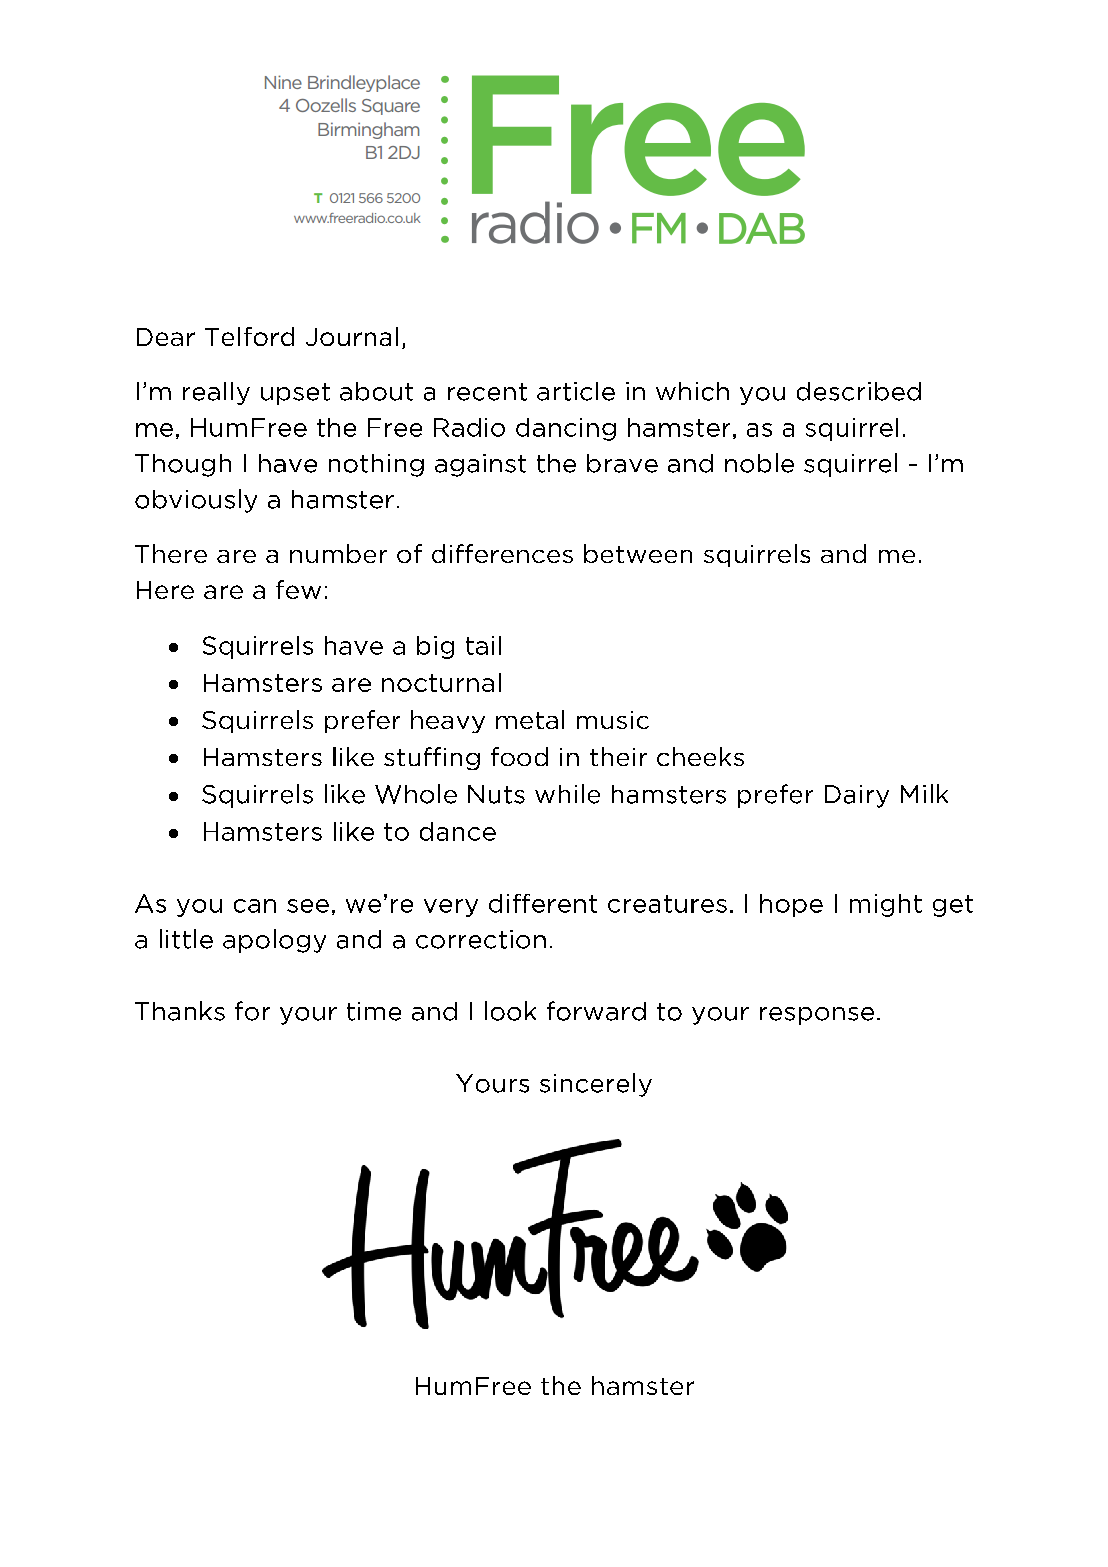 HumFree's official letter to the press.